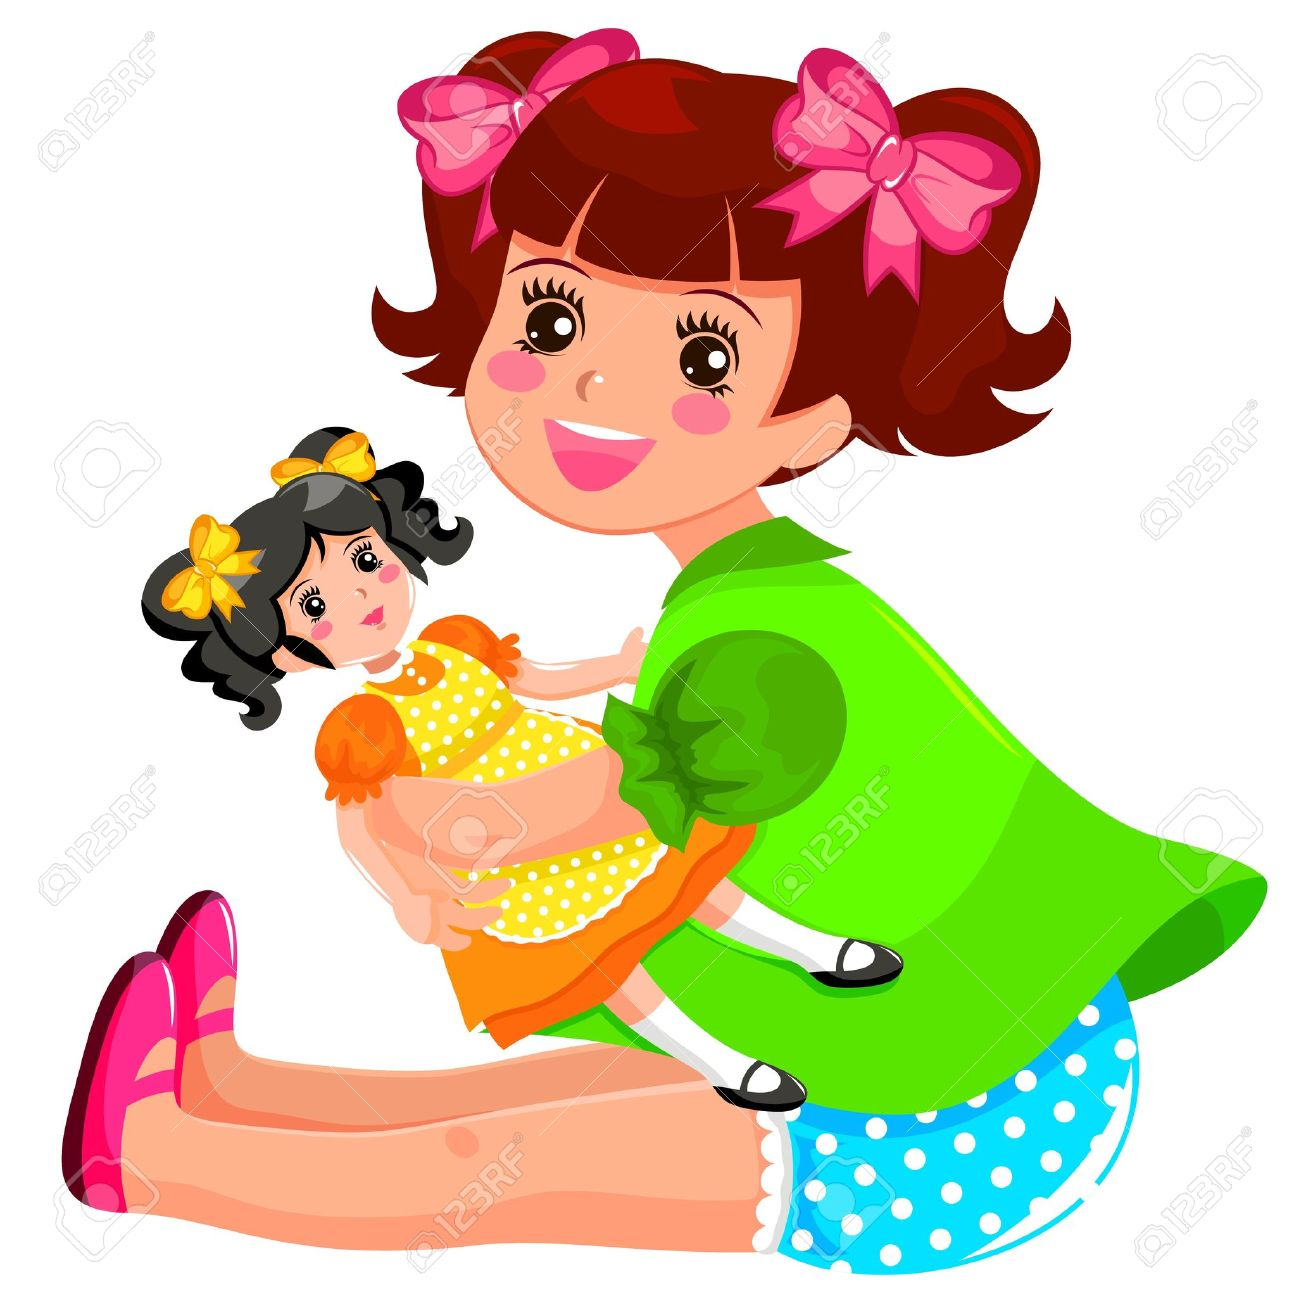 little girl playing with her doll royalty free cliparts vectors rh 123rf com doll clipart black and white doll clipart png